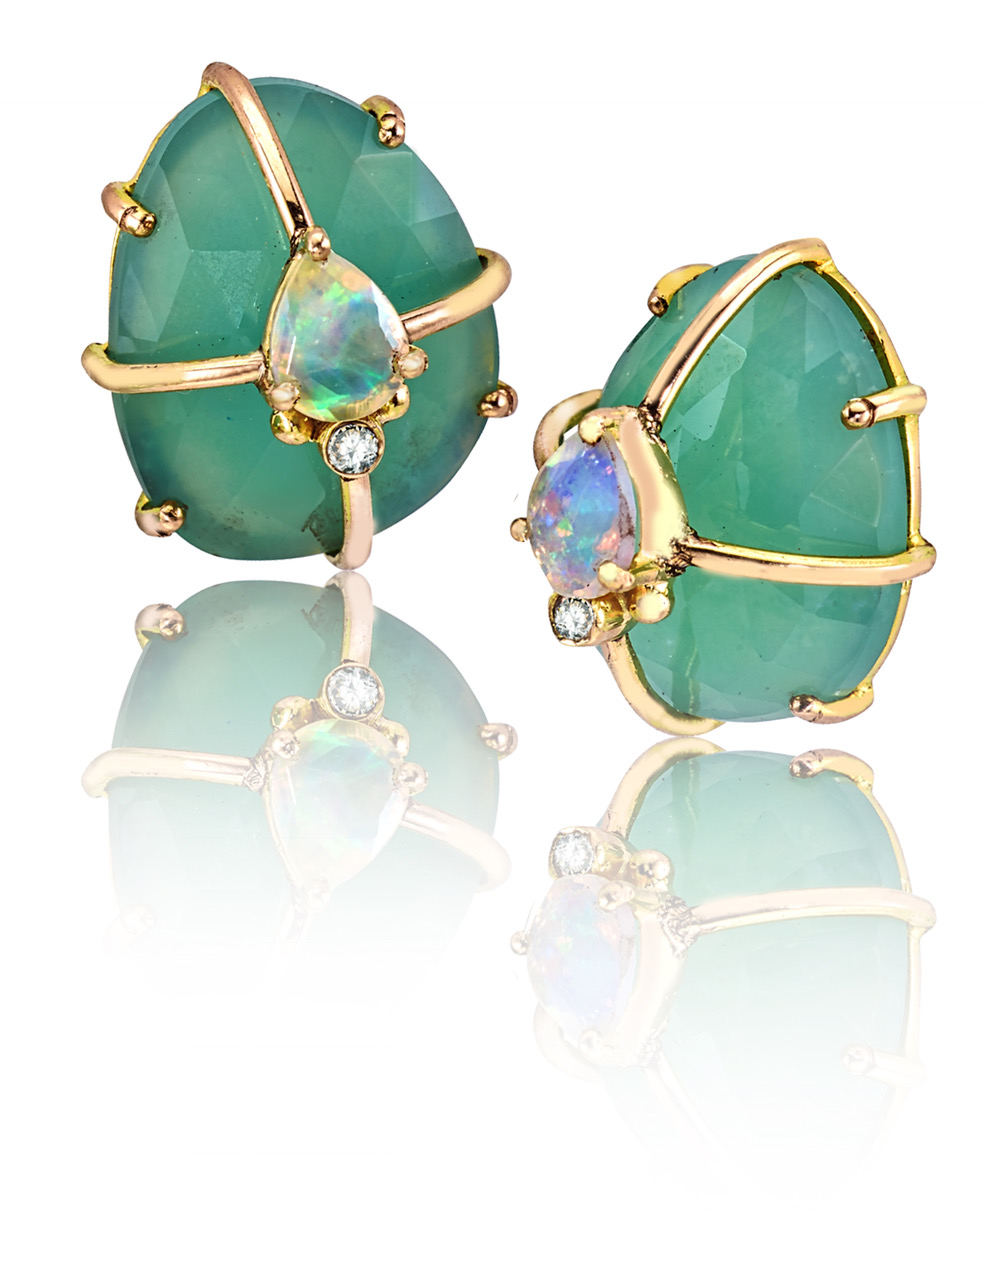 Organique Collection Earrings